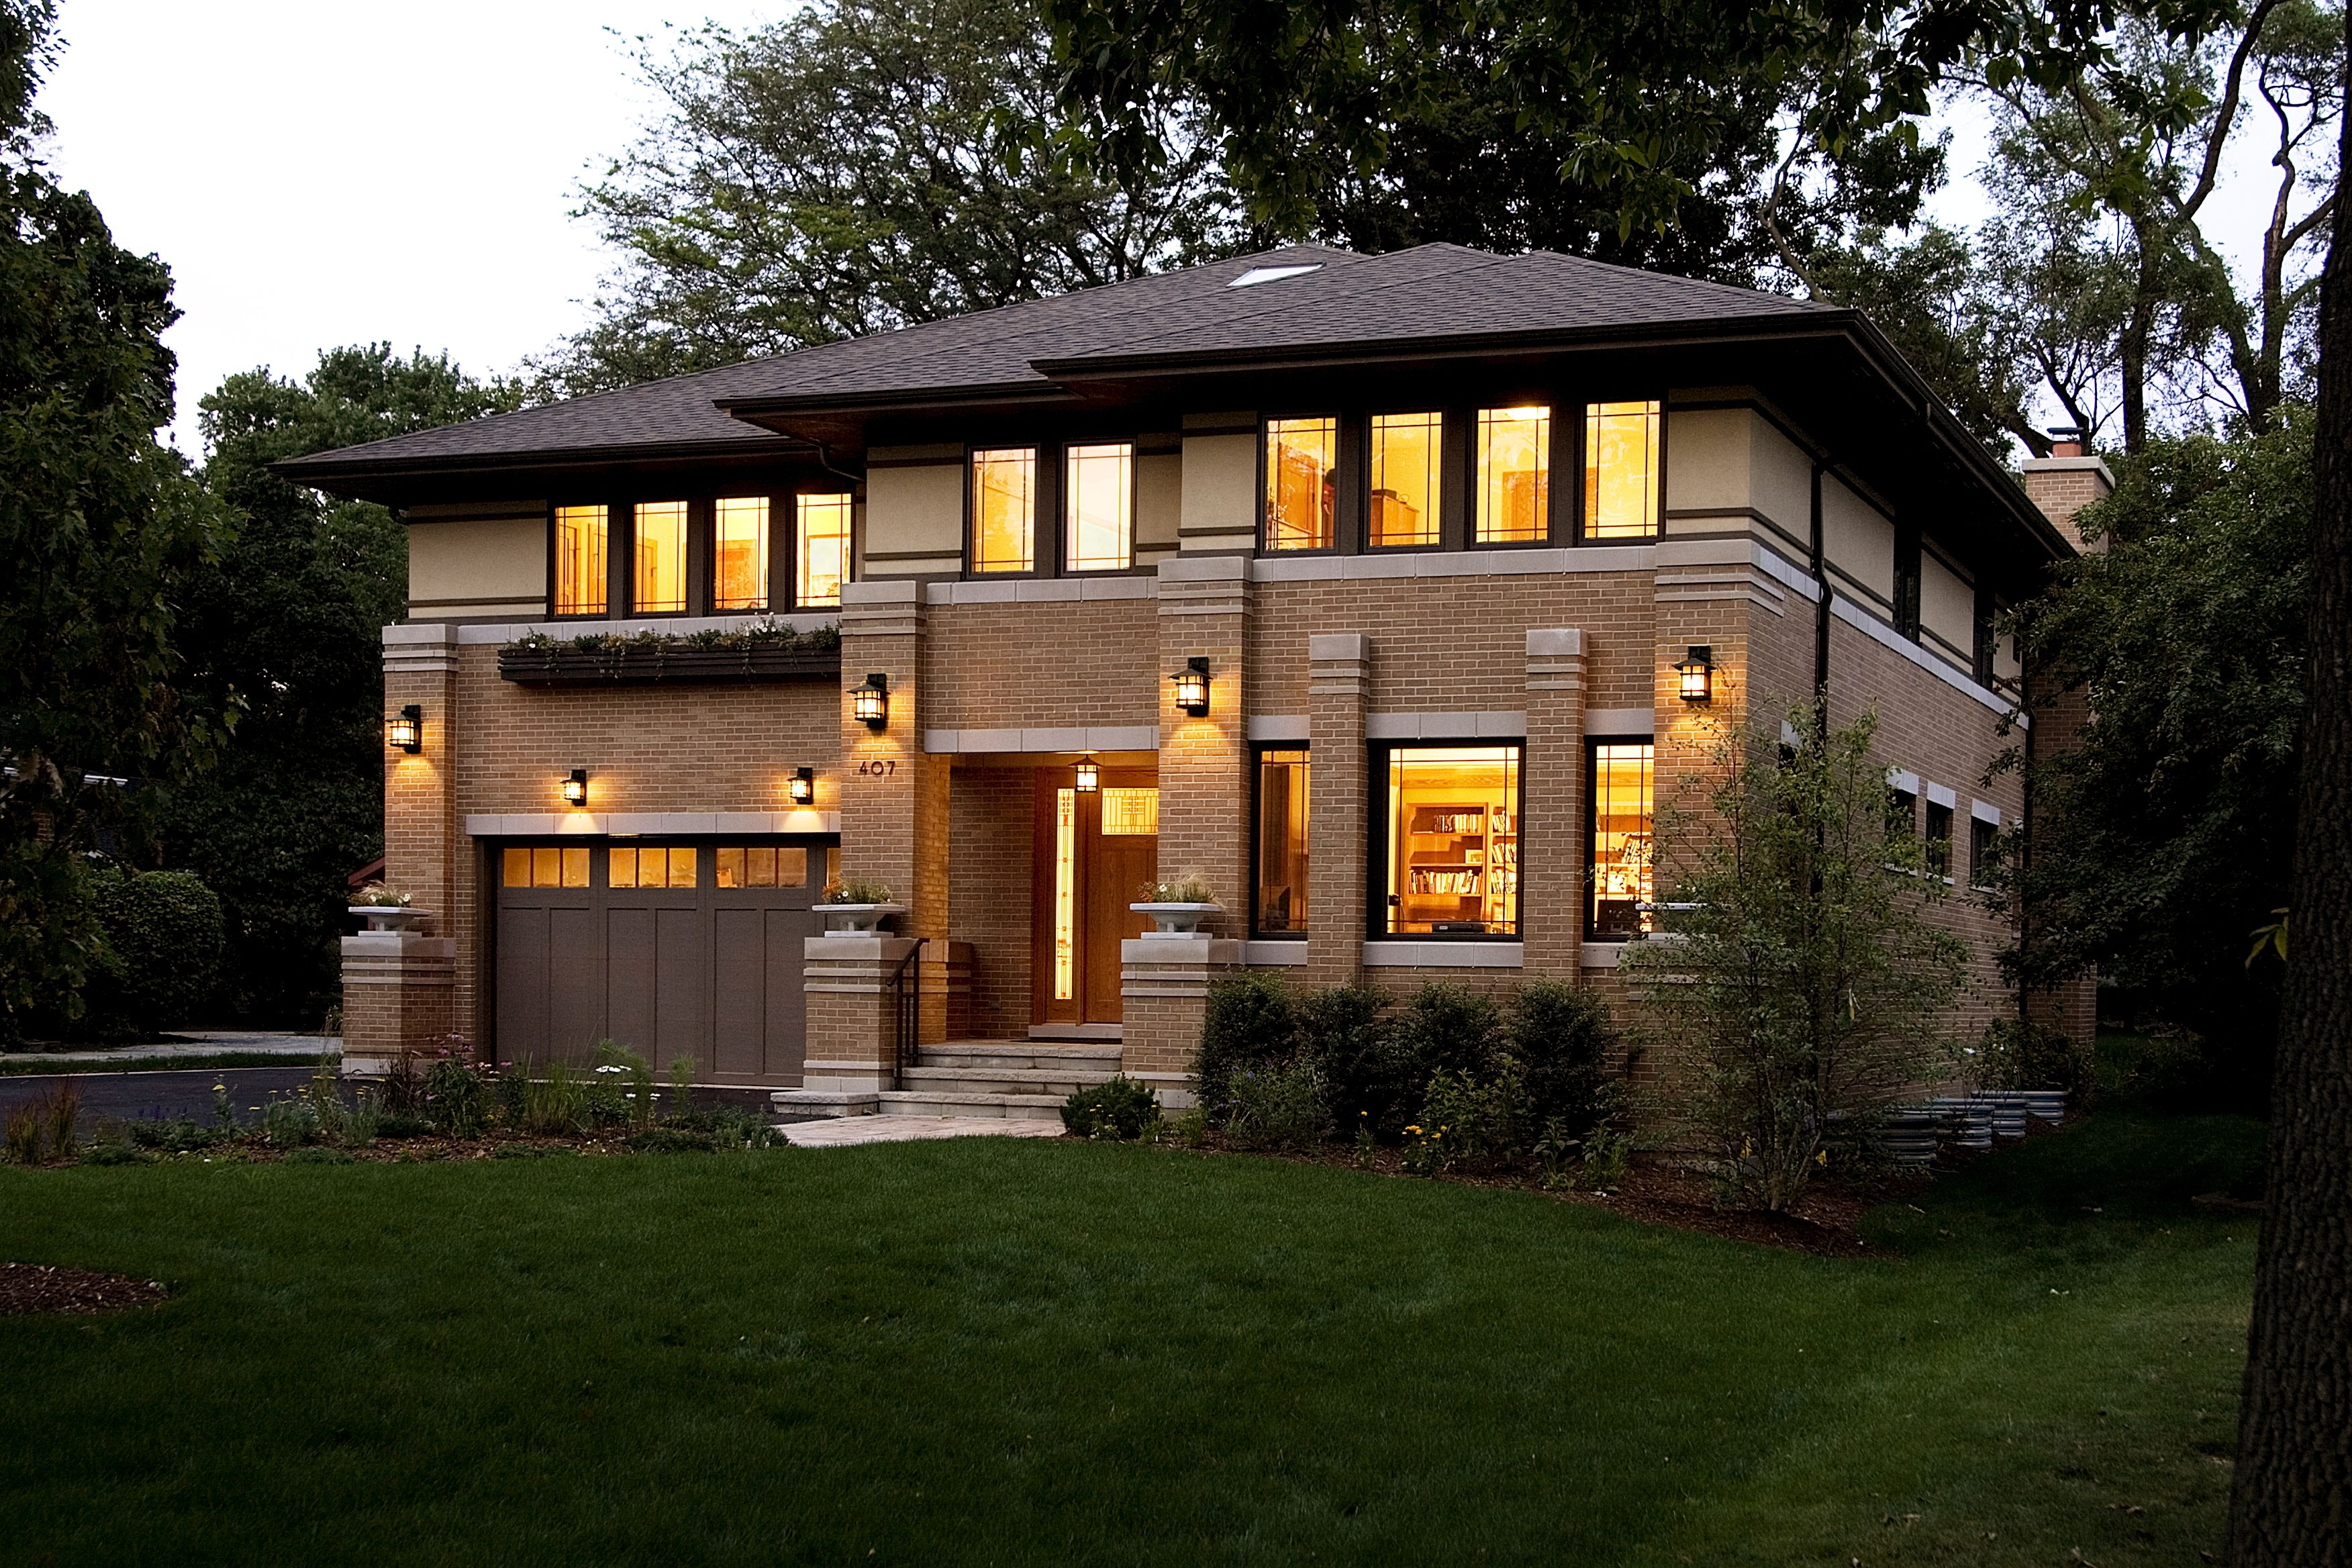 New prairie style house west studio frank lloyd wright for Prairie style home designs